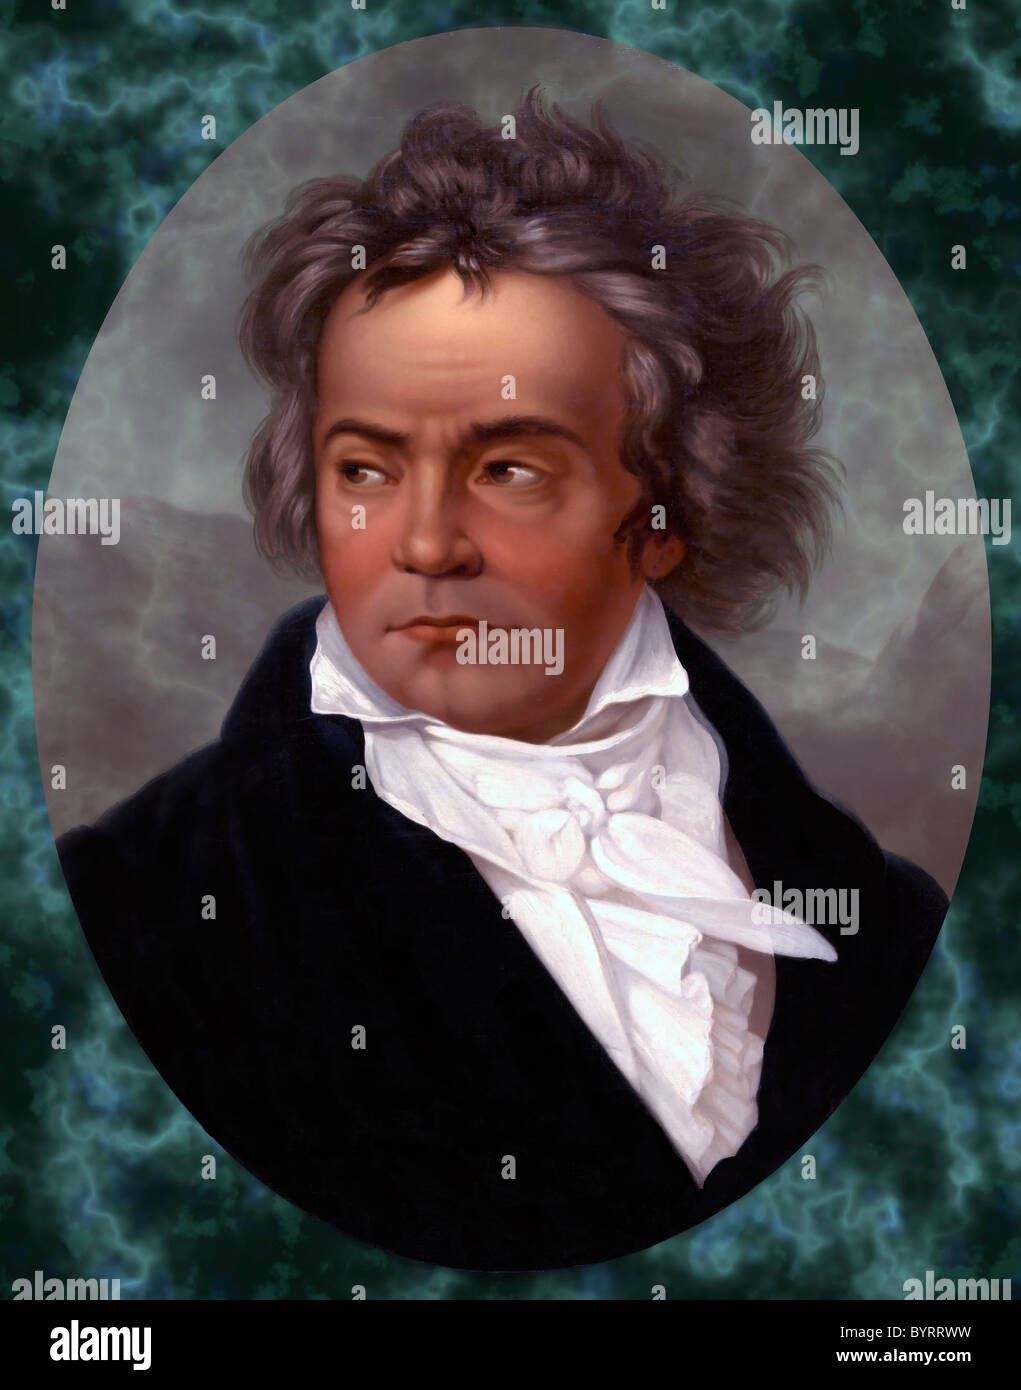 Ludwig Van Beethoven Portrait  on colorful, lively background - Stock Image